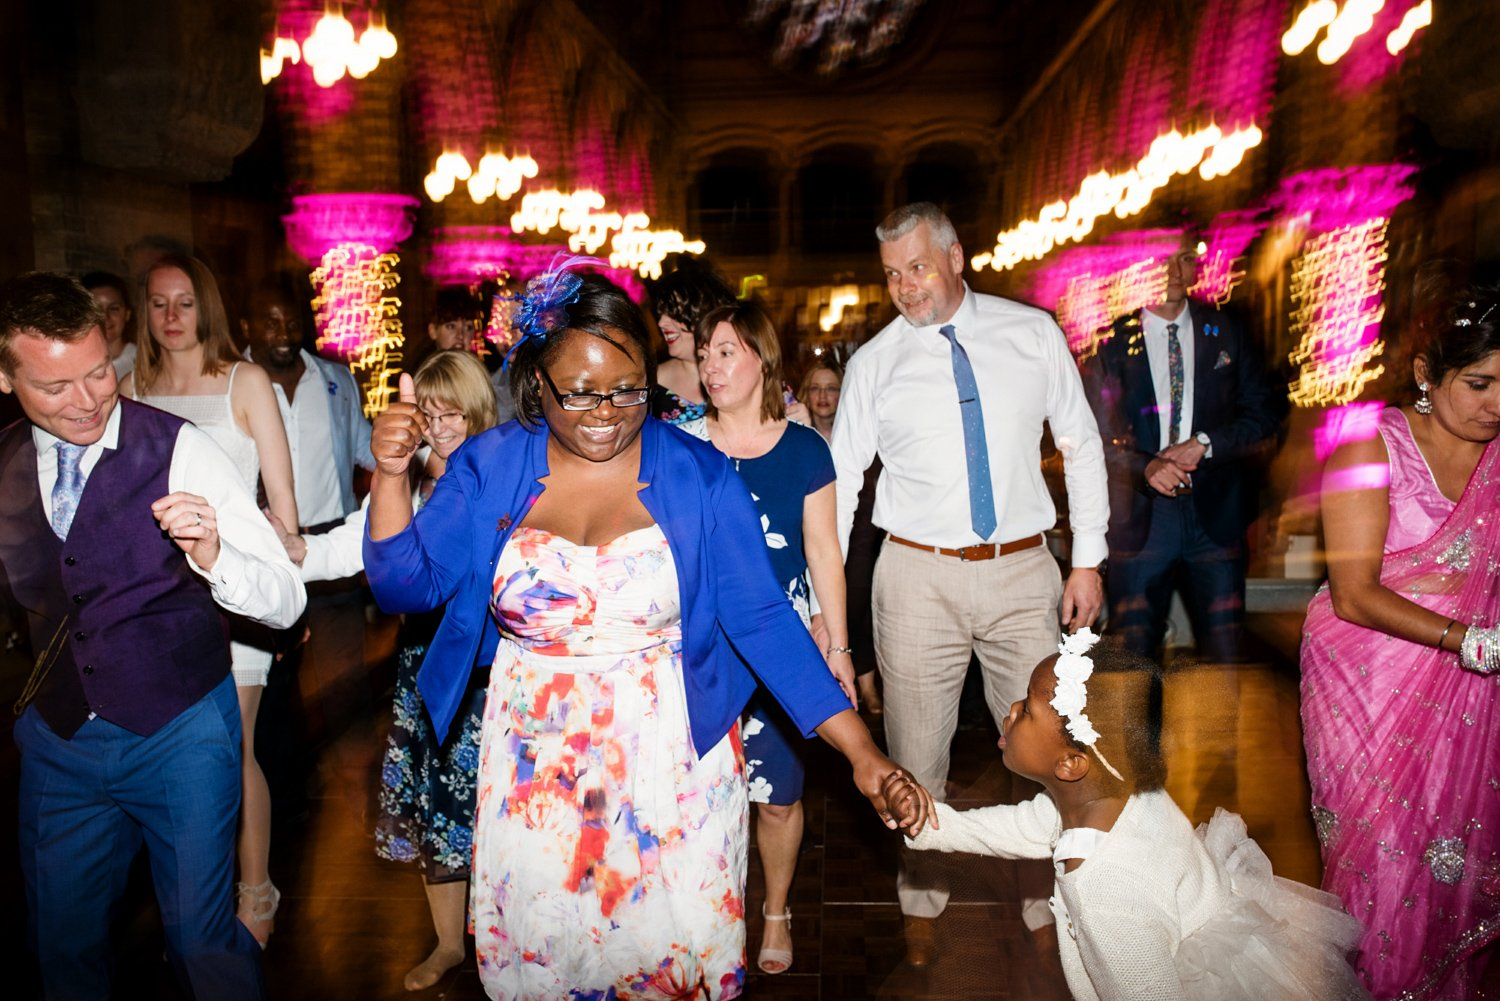 st-stephens-rosslyn-hill-wedding-photography-49